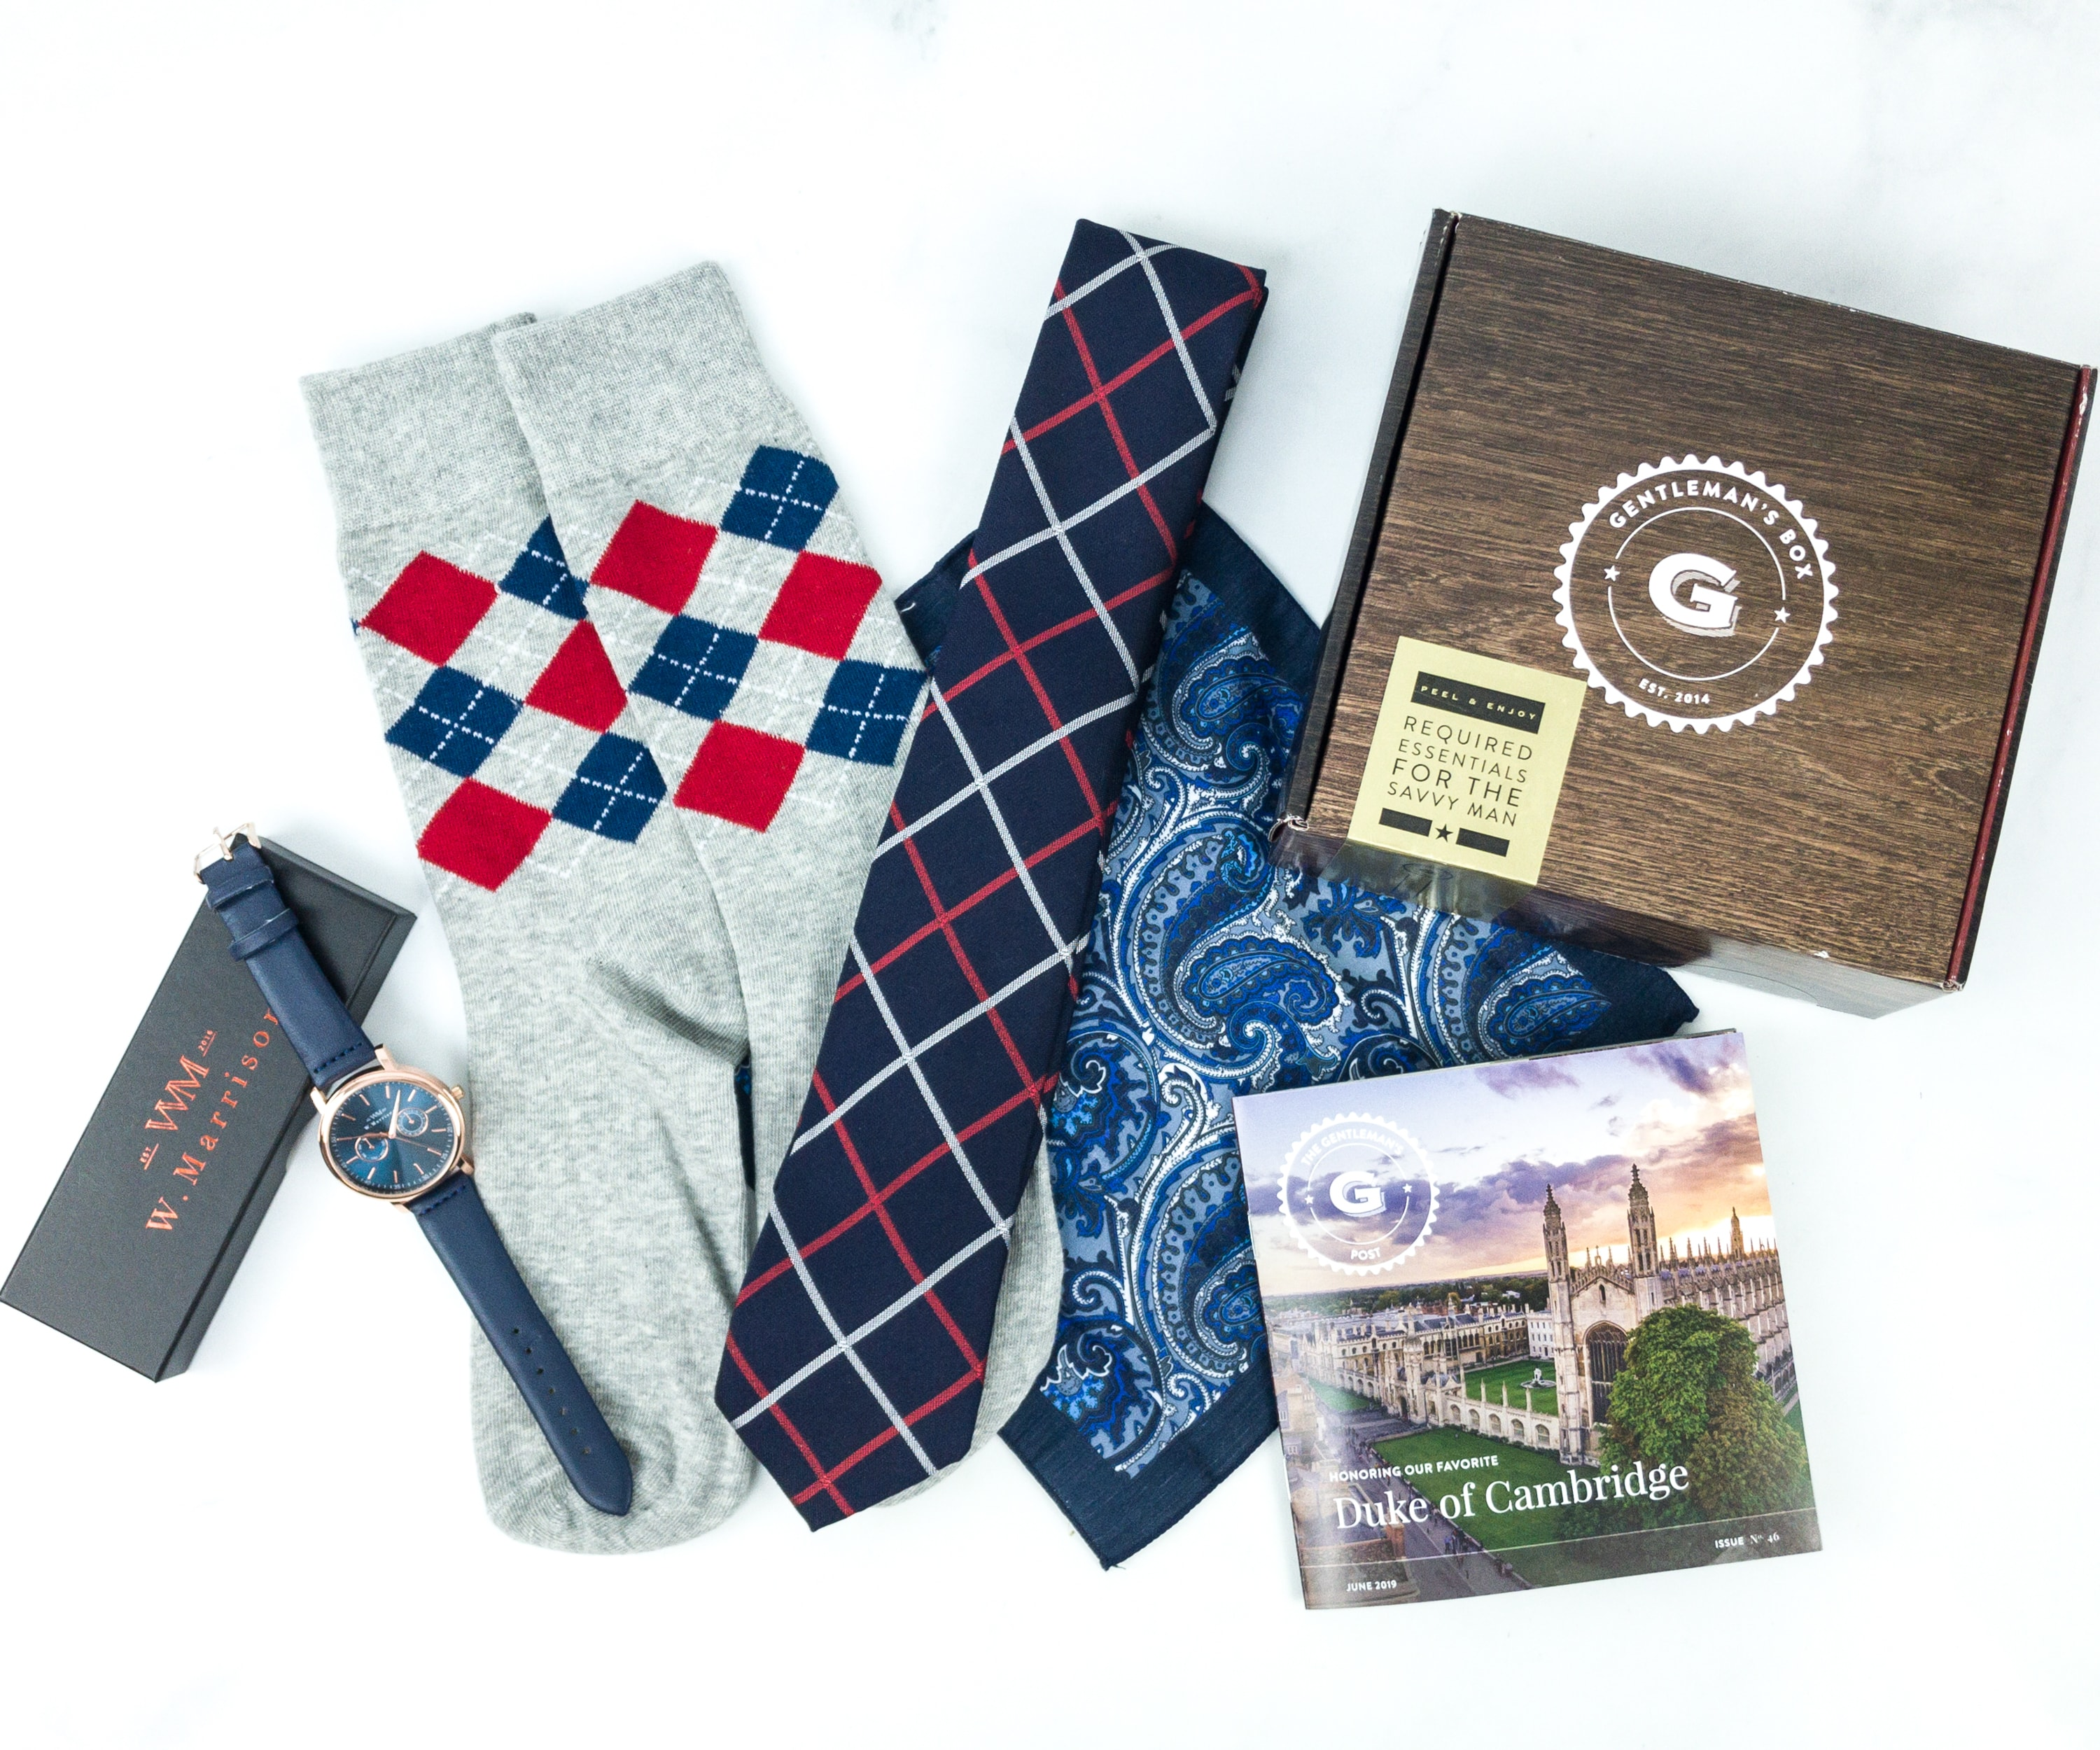 The Gentleman's Box June 2019 Review & Coupon